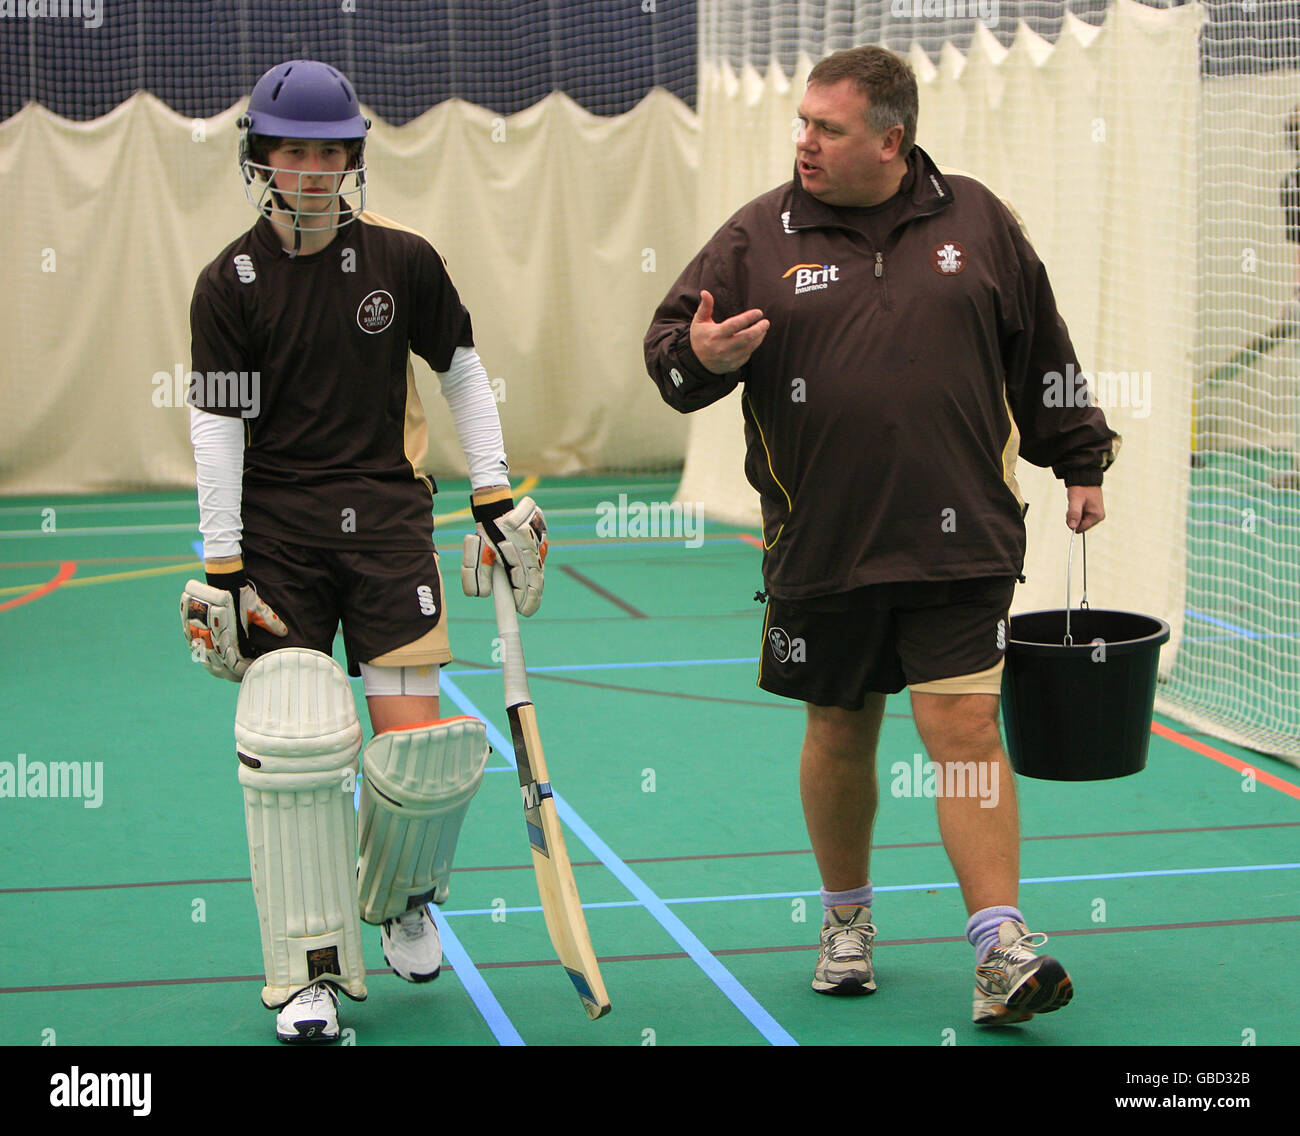 Cricket - Media Open Evening - Pemberton Greenish Surrey Academy - Stock Image